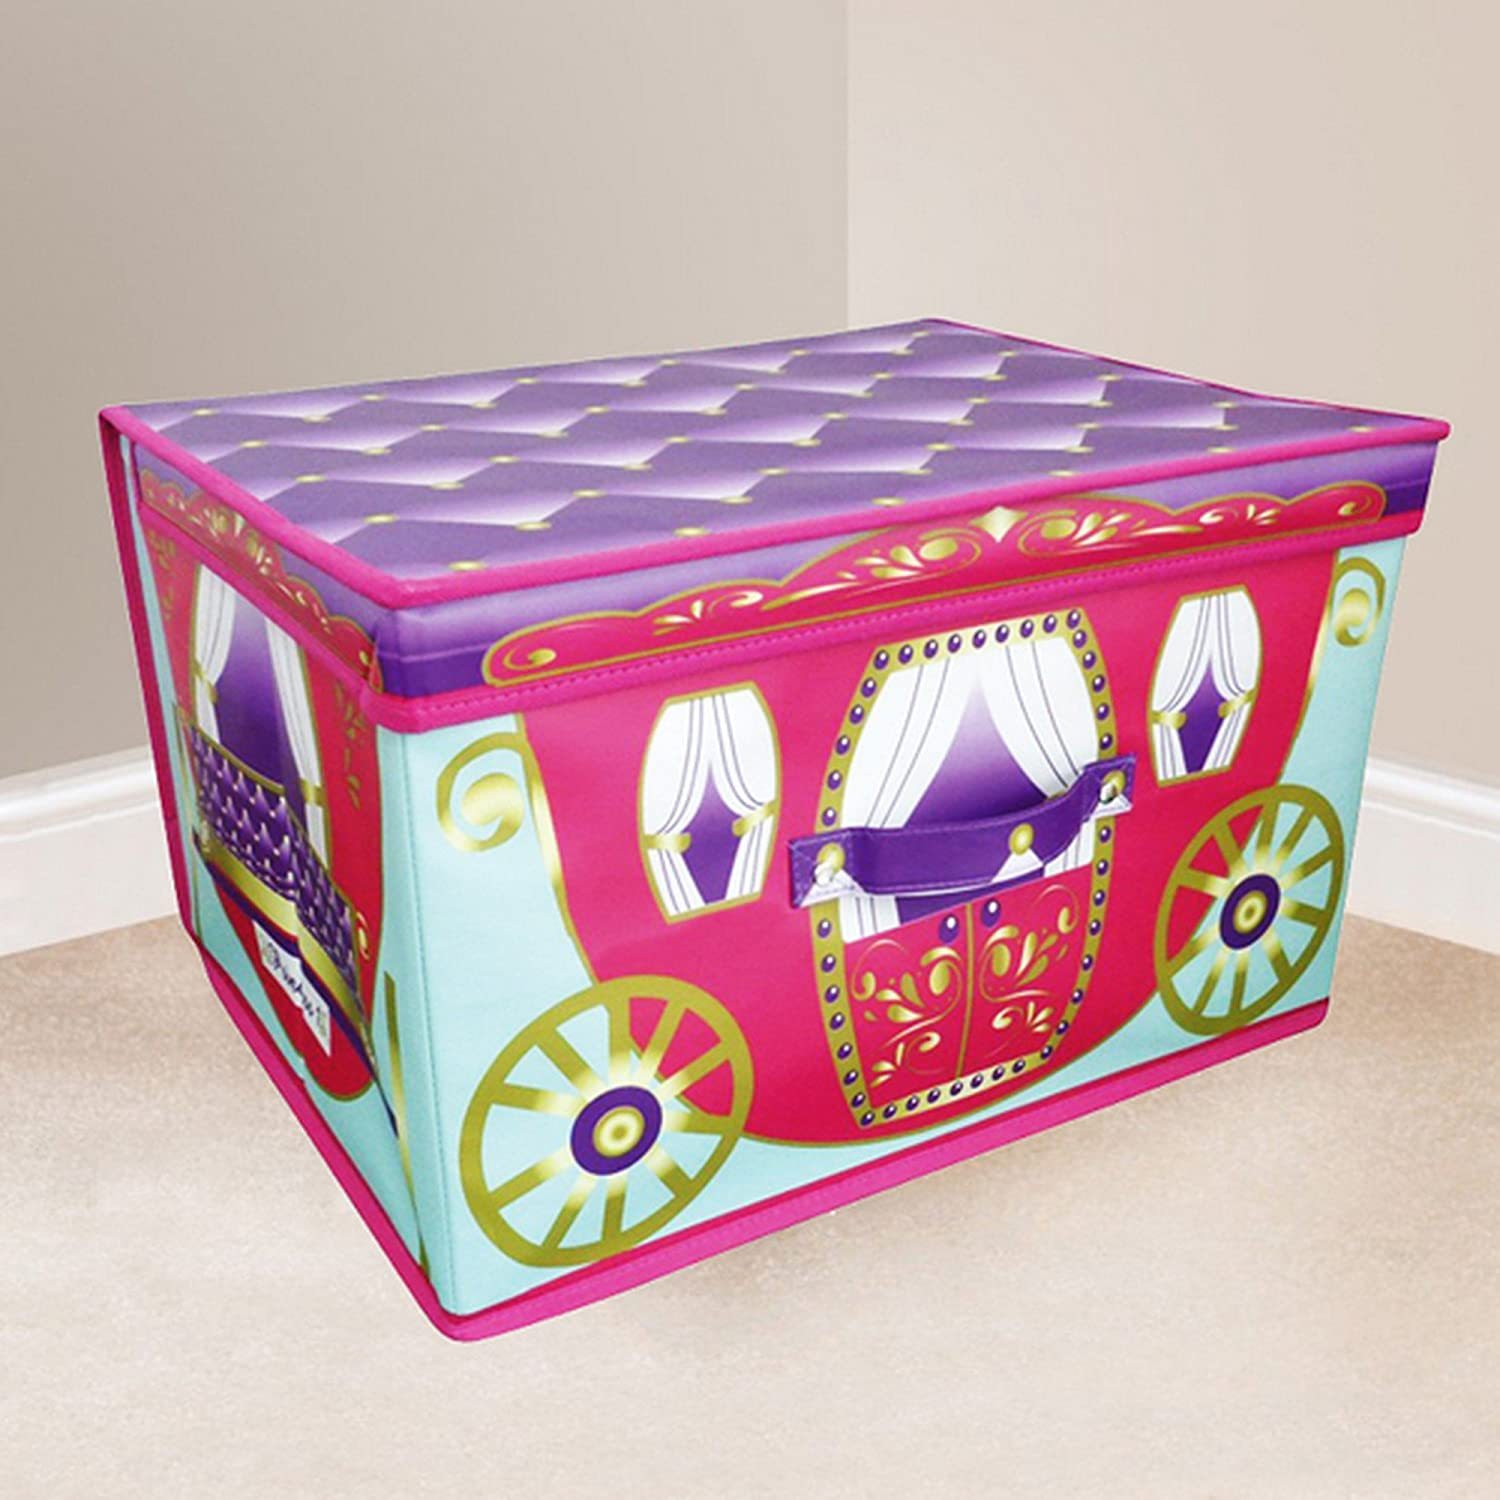 Jumbo Large Toy Book Bedding Laundry Kids Childrens Storage Box Chest Princess Pink Carriage with Purple Lid